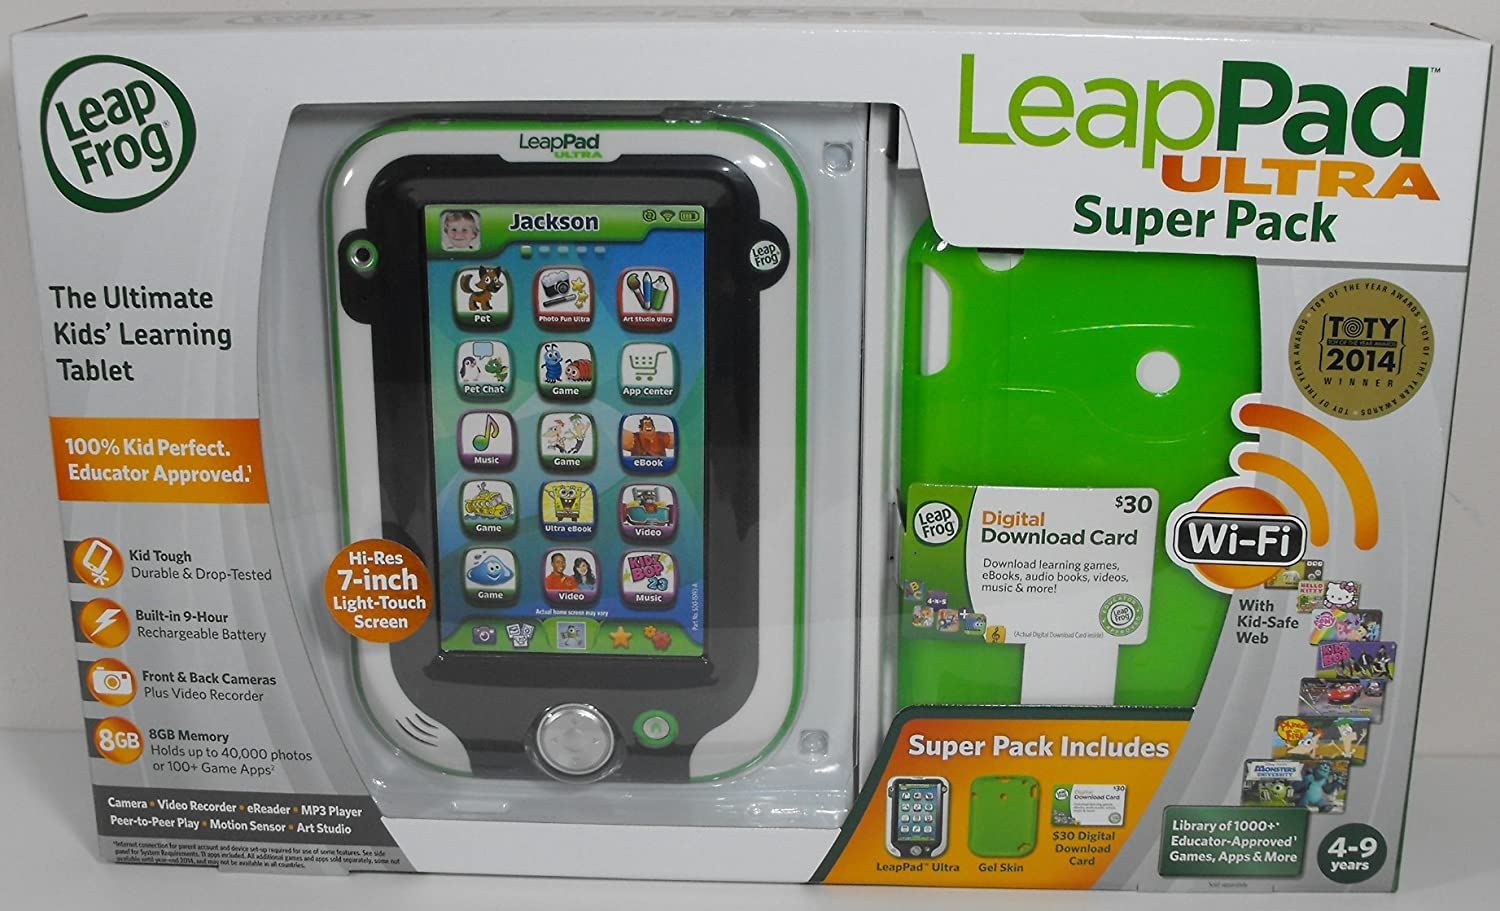 are there any free apps for leappad ultra